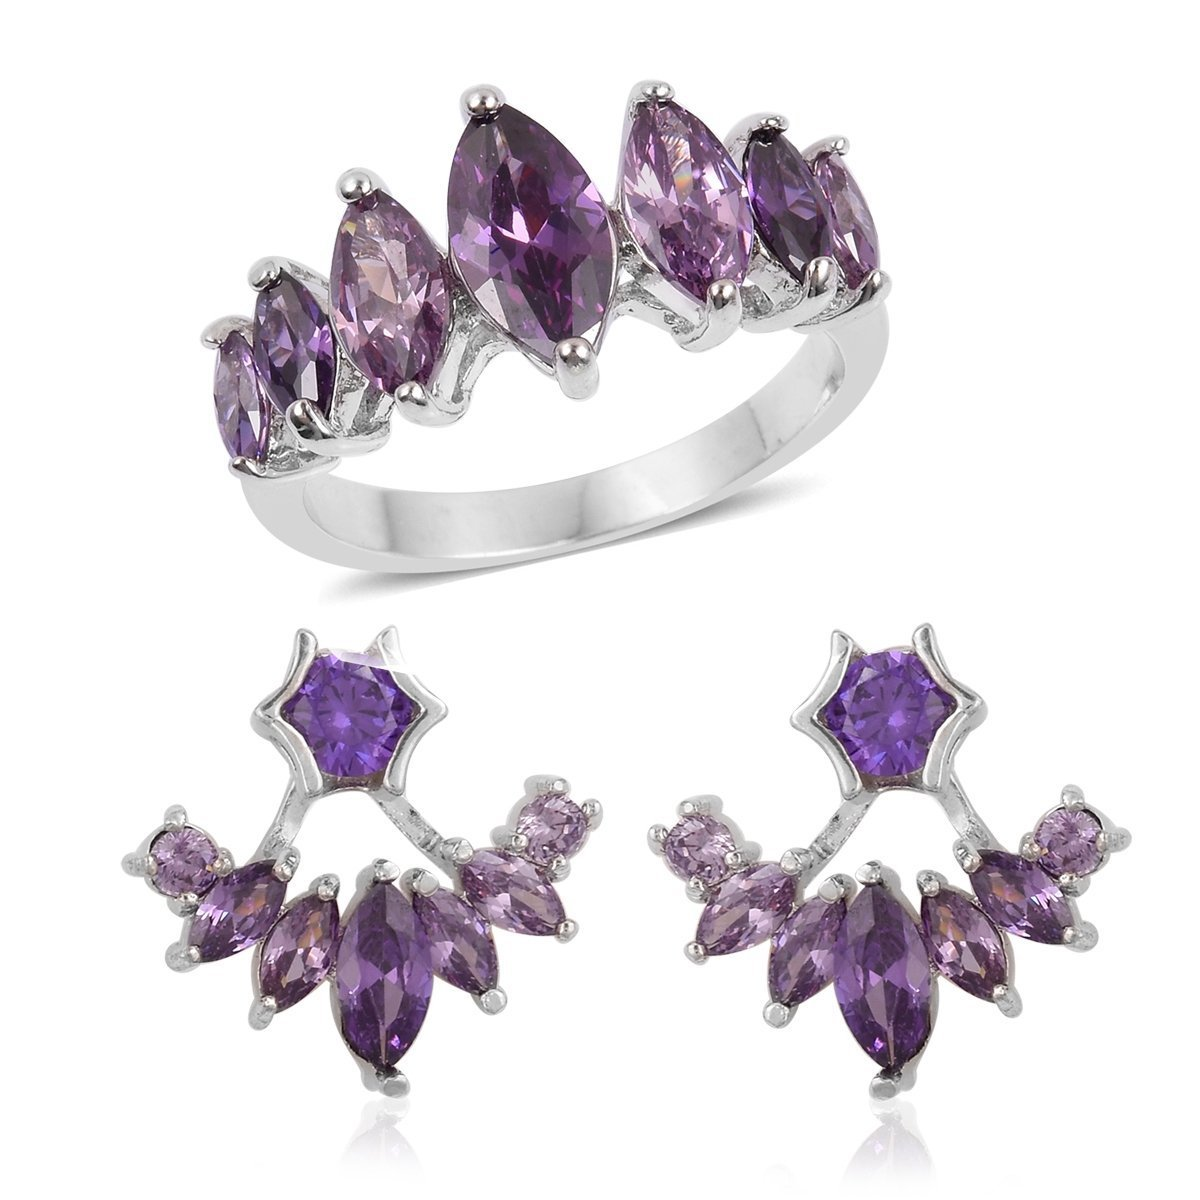 Round Cubic Zircon Purple Silvertone Ring Size 9 Stud Earring Set for Women Cttw 2.9 by Shop LC